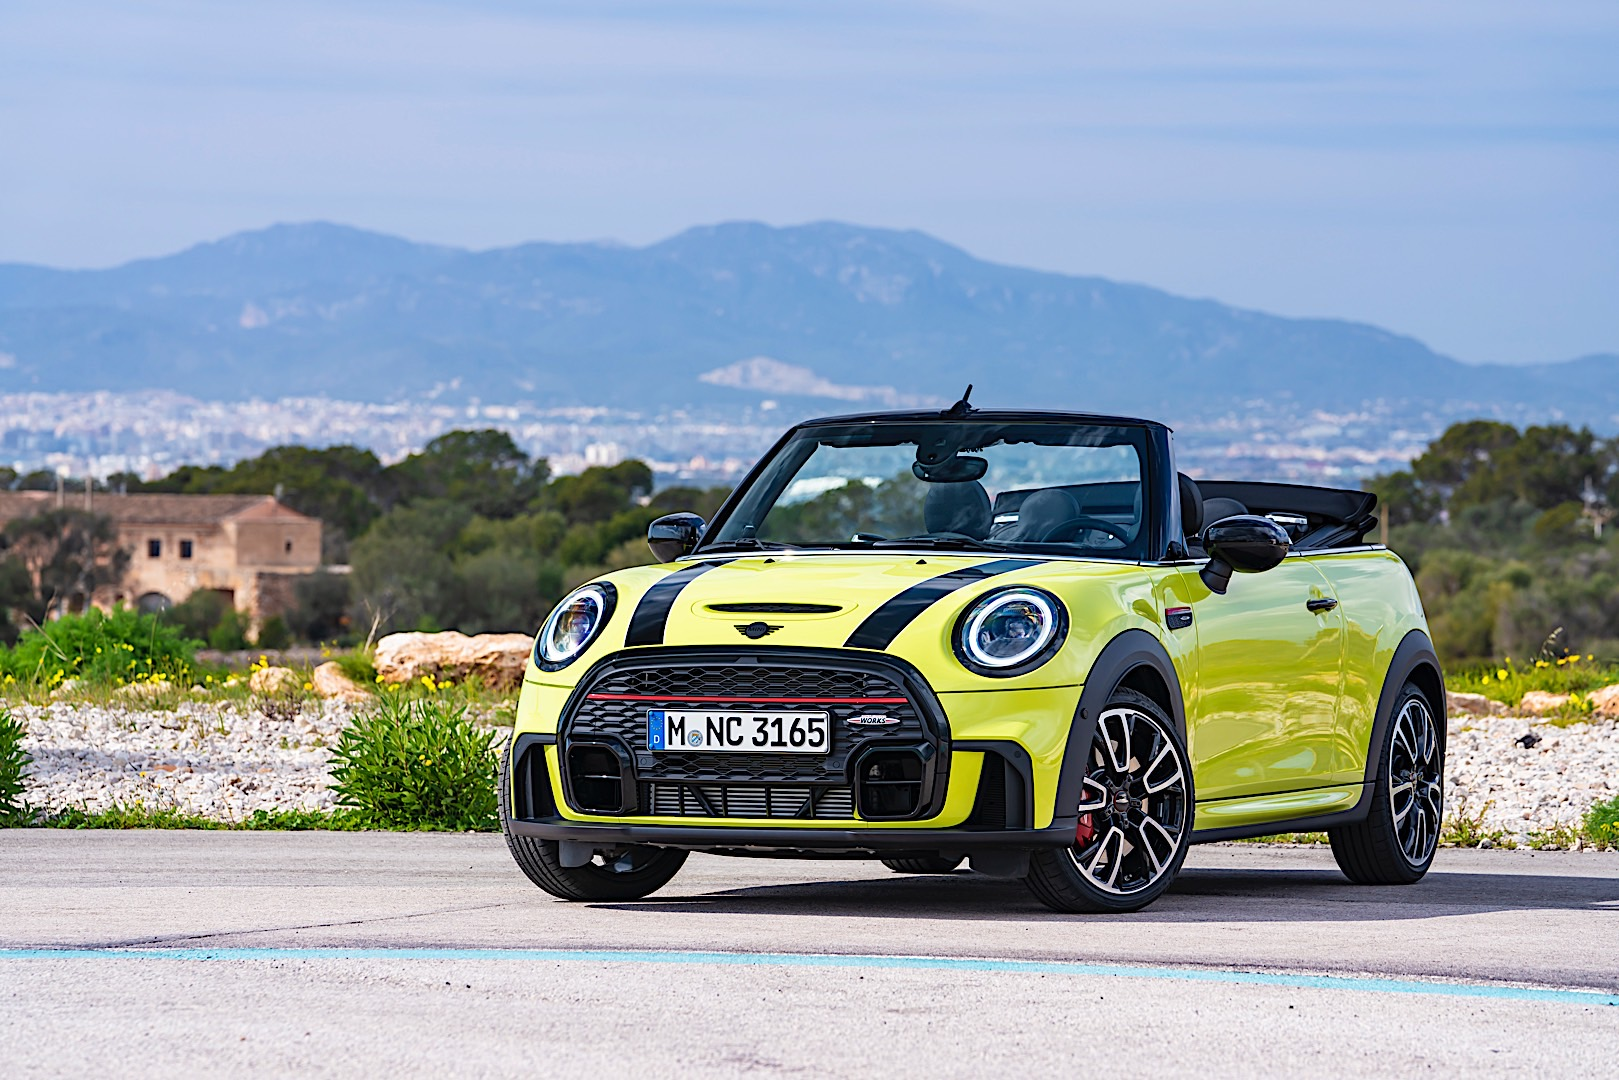 Facelifted MINI JCW Convertible unveiled with fresh looks and colors